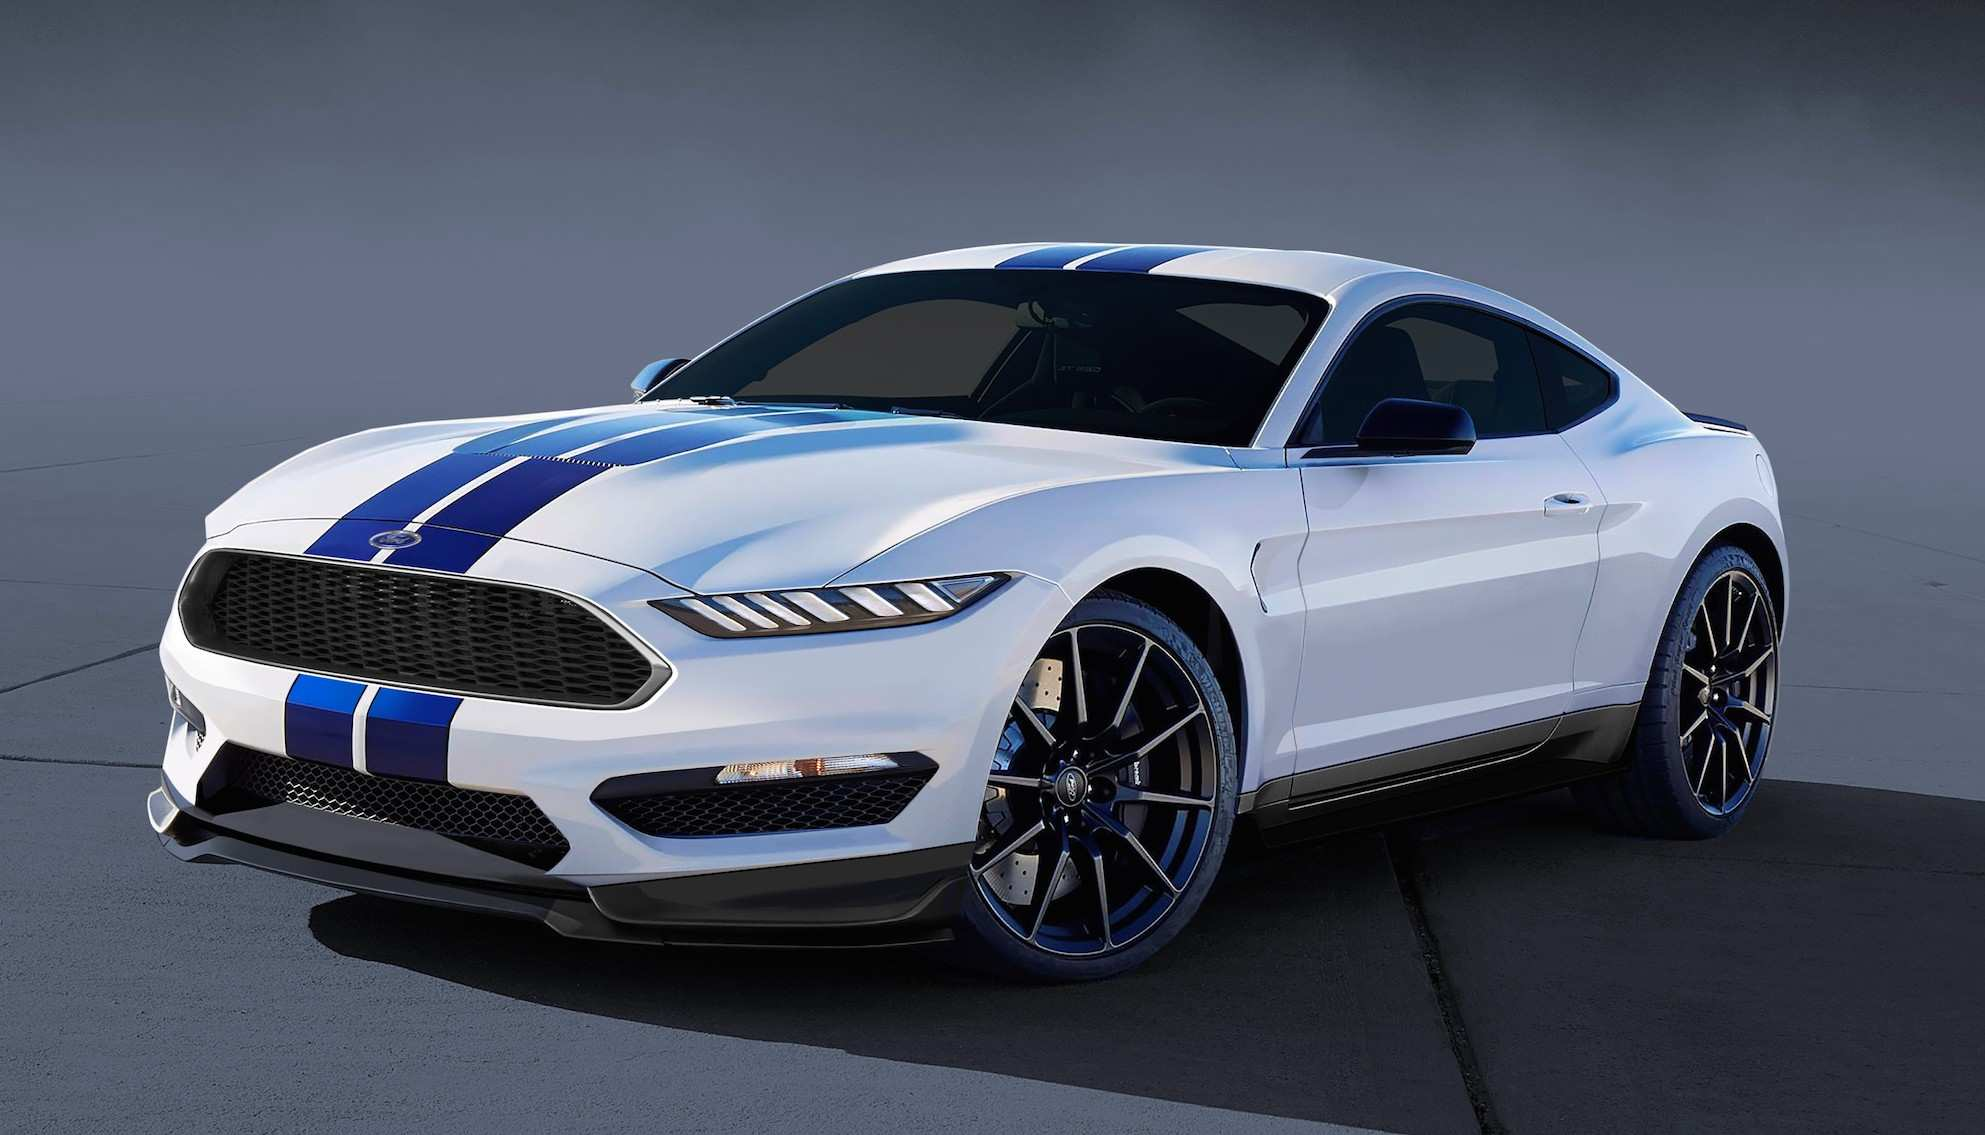 98 New 2020 Ford Mustang Shelby Gt 350 Rumors by 2020 Ford Mustang Shelby Gt 350